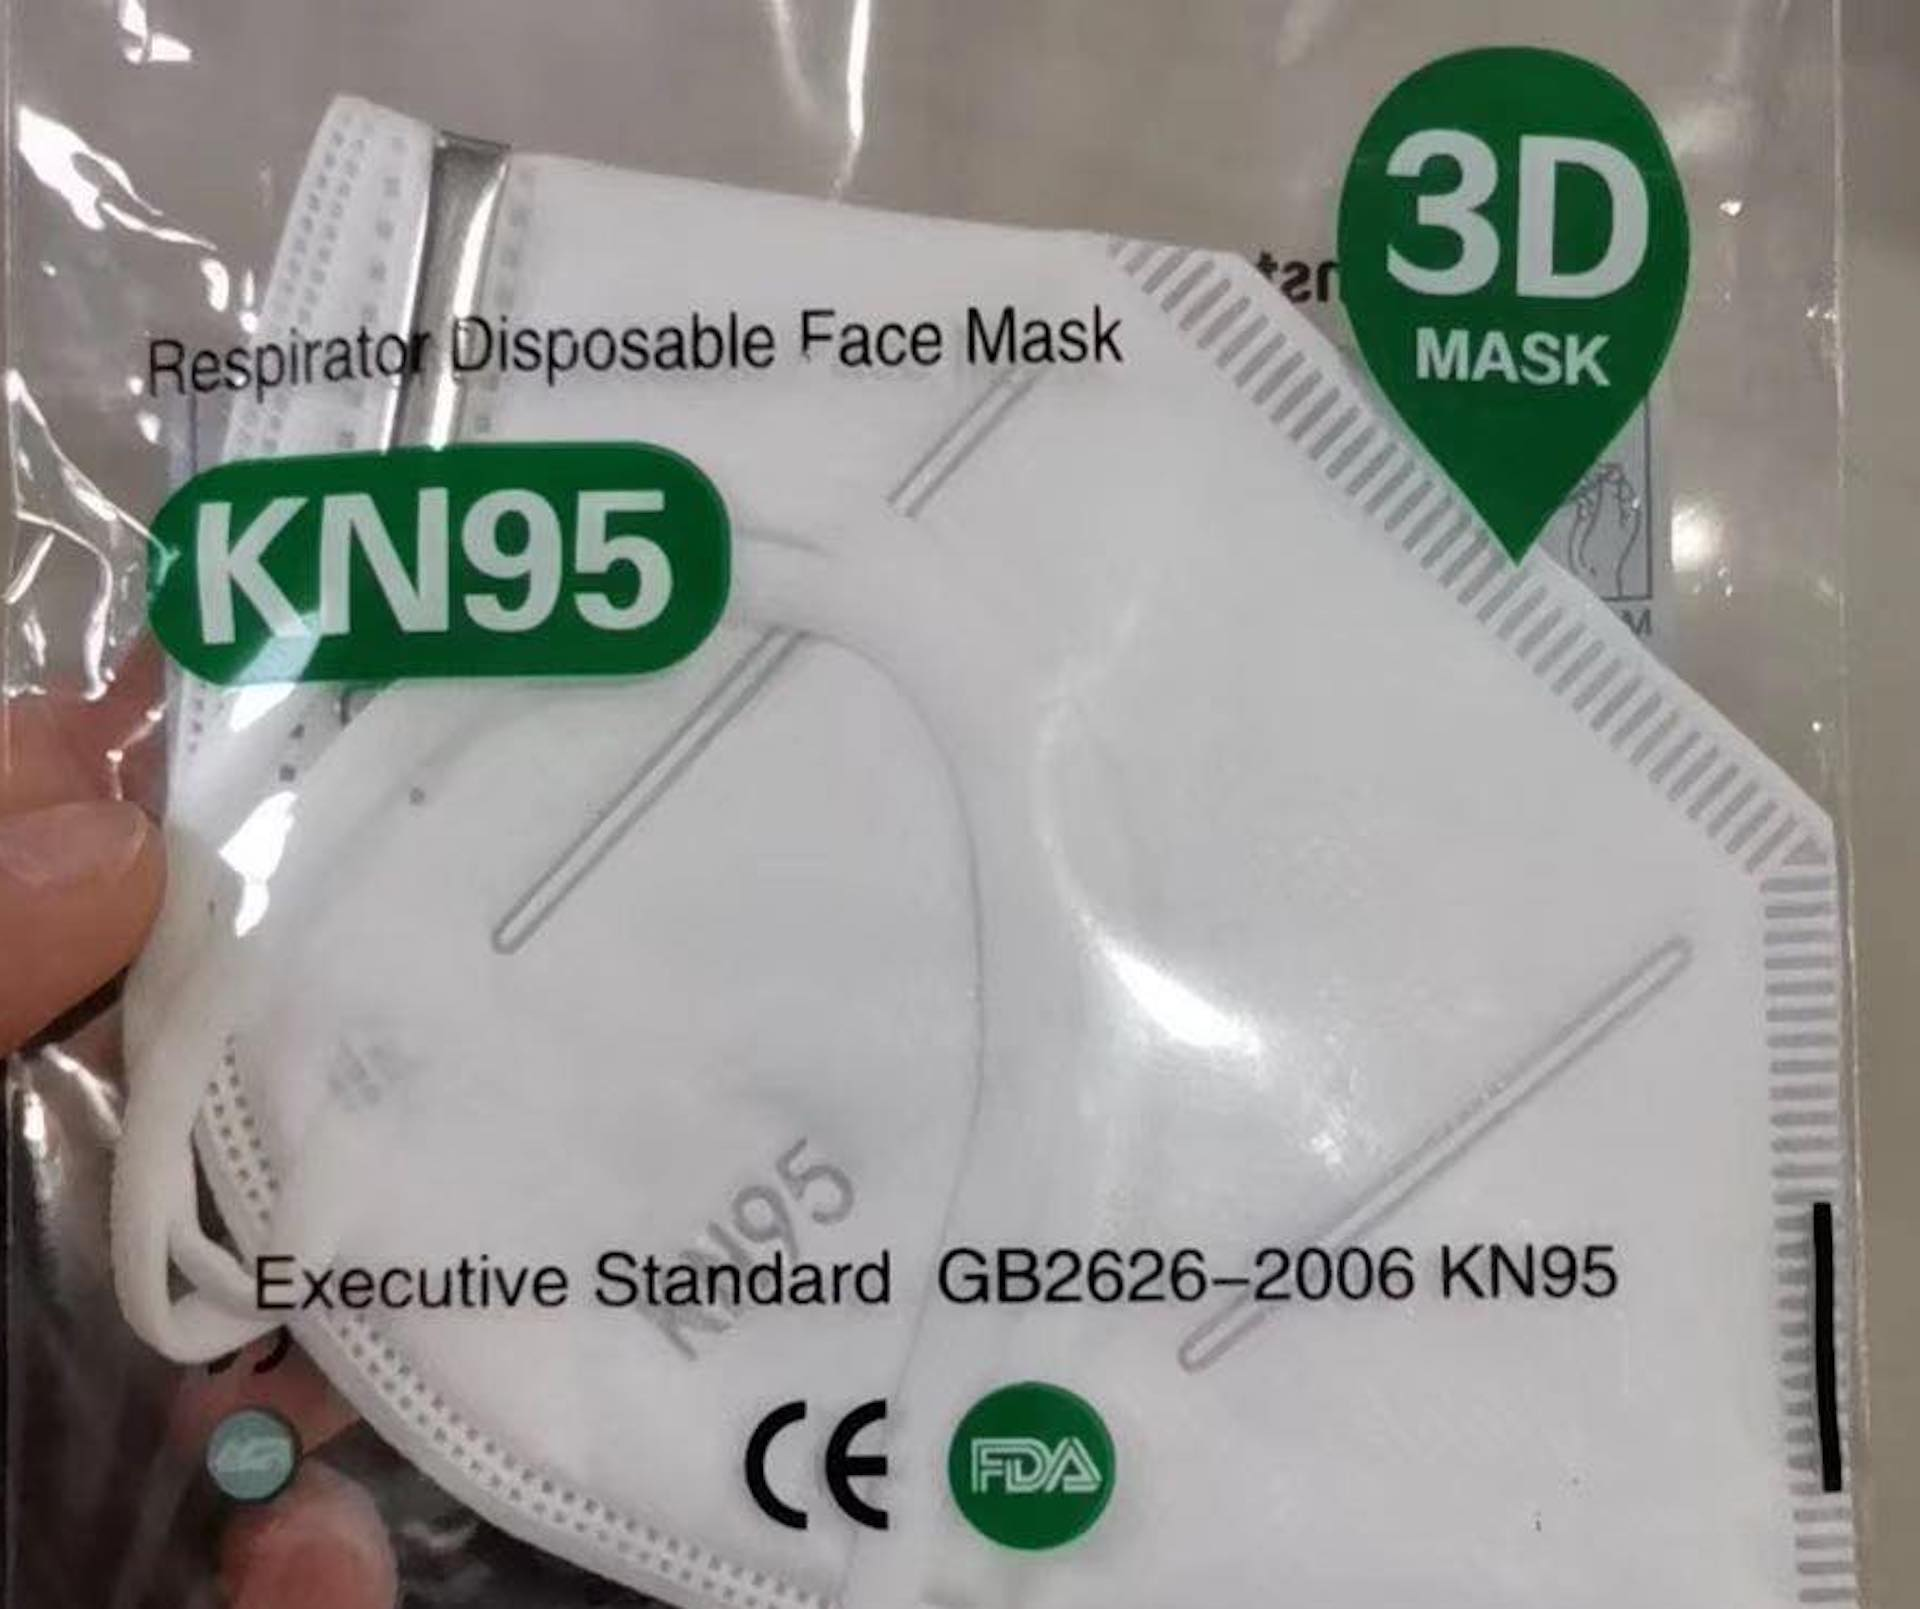 , Chinese Drug Traffickers Have a Brand New Product: Knock-Off N95 Masks for Coronavirus, Saubio Making Wealth